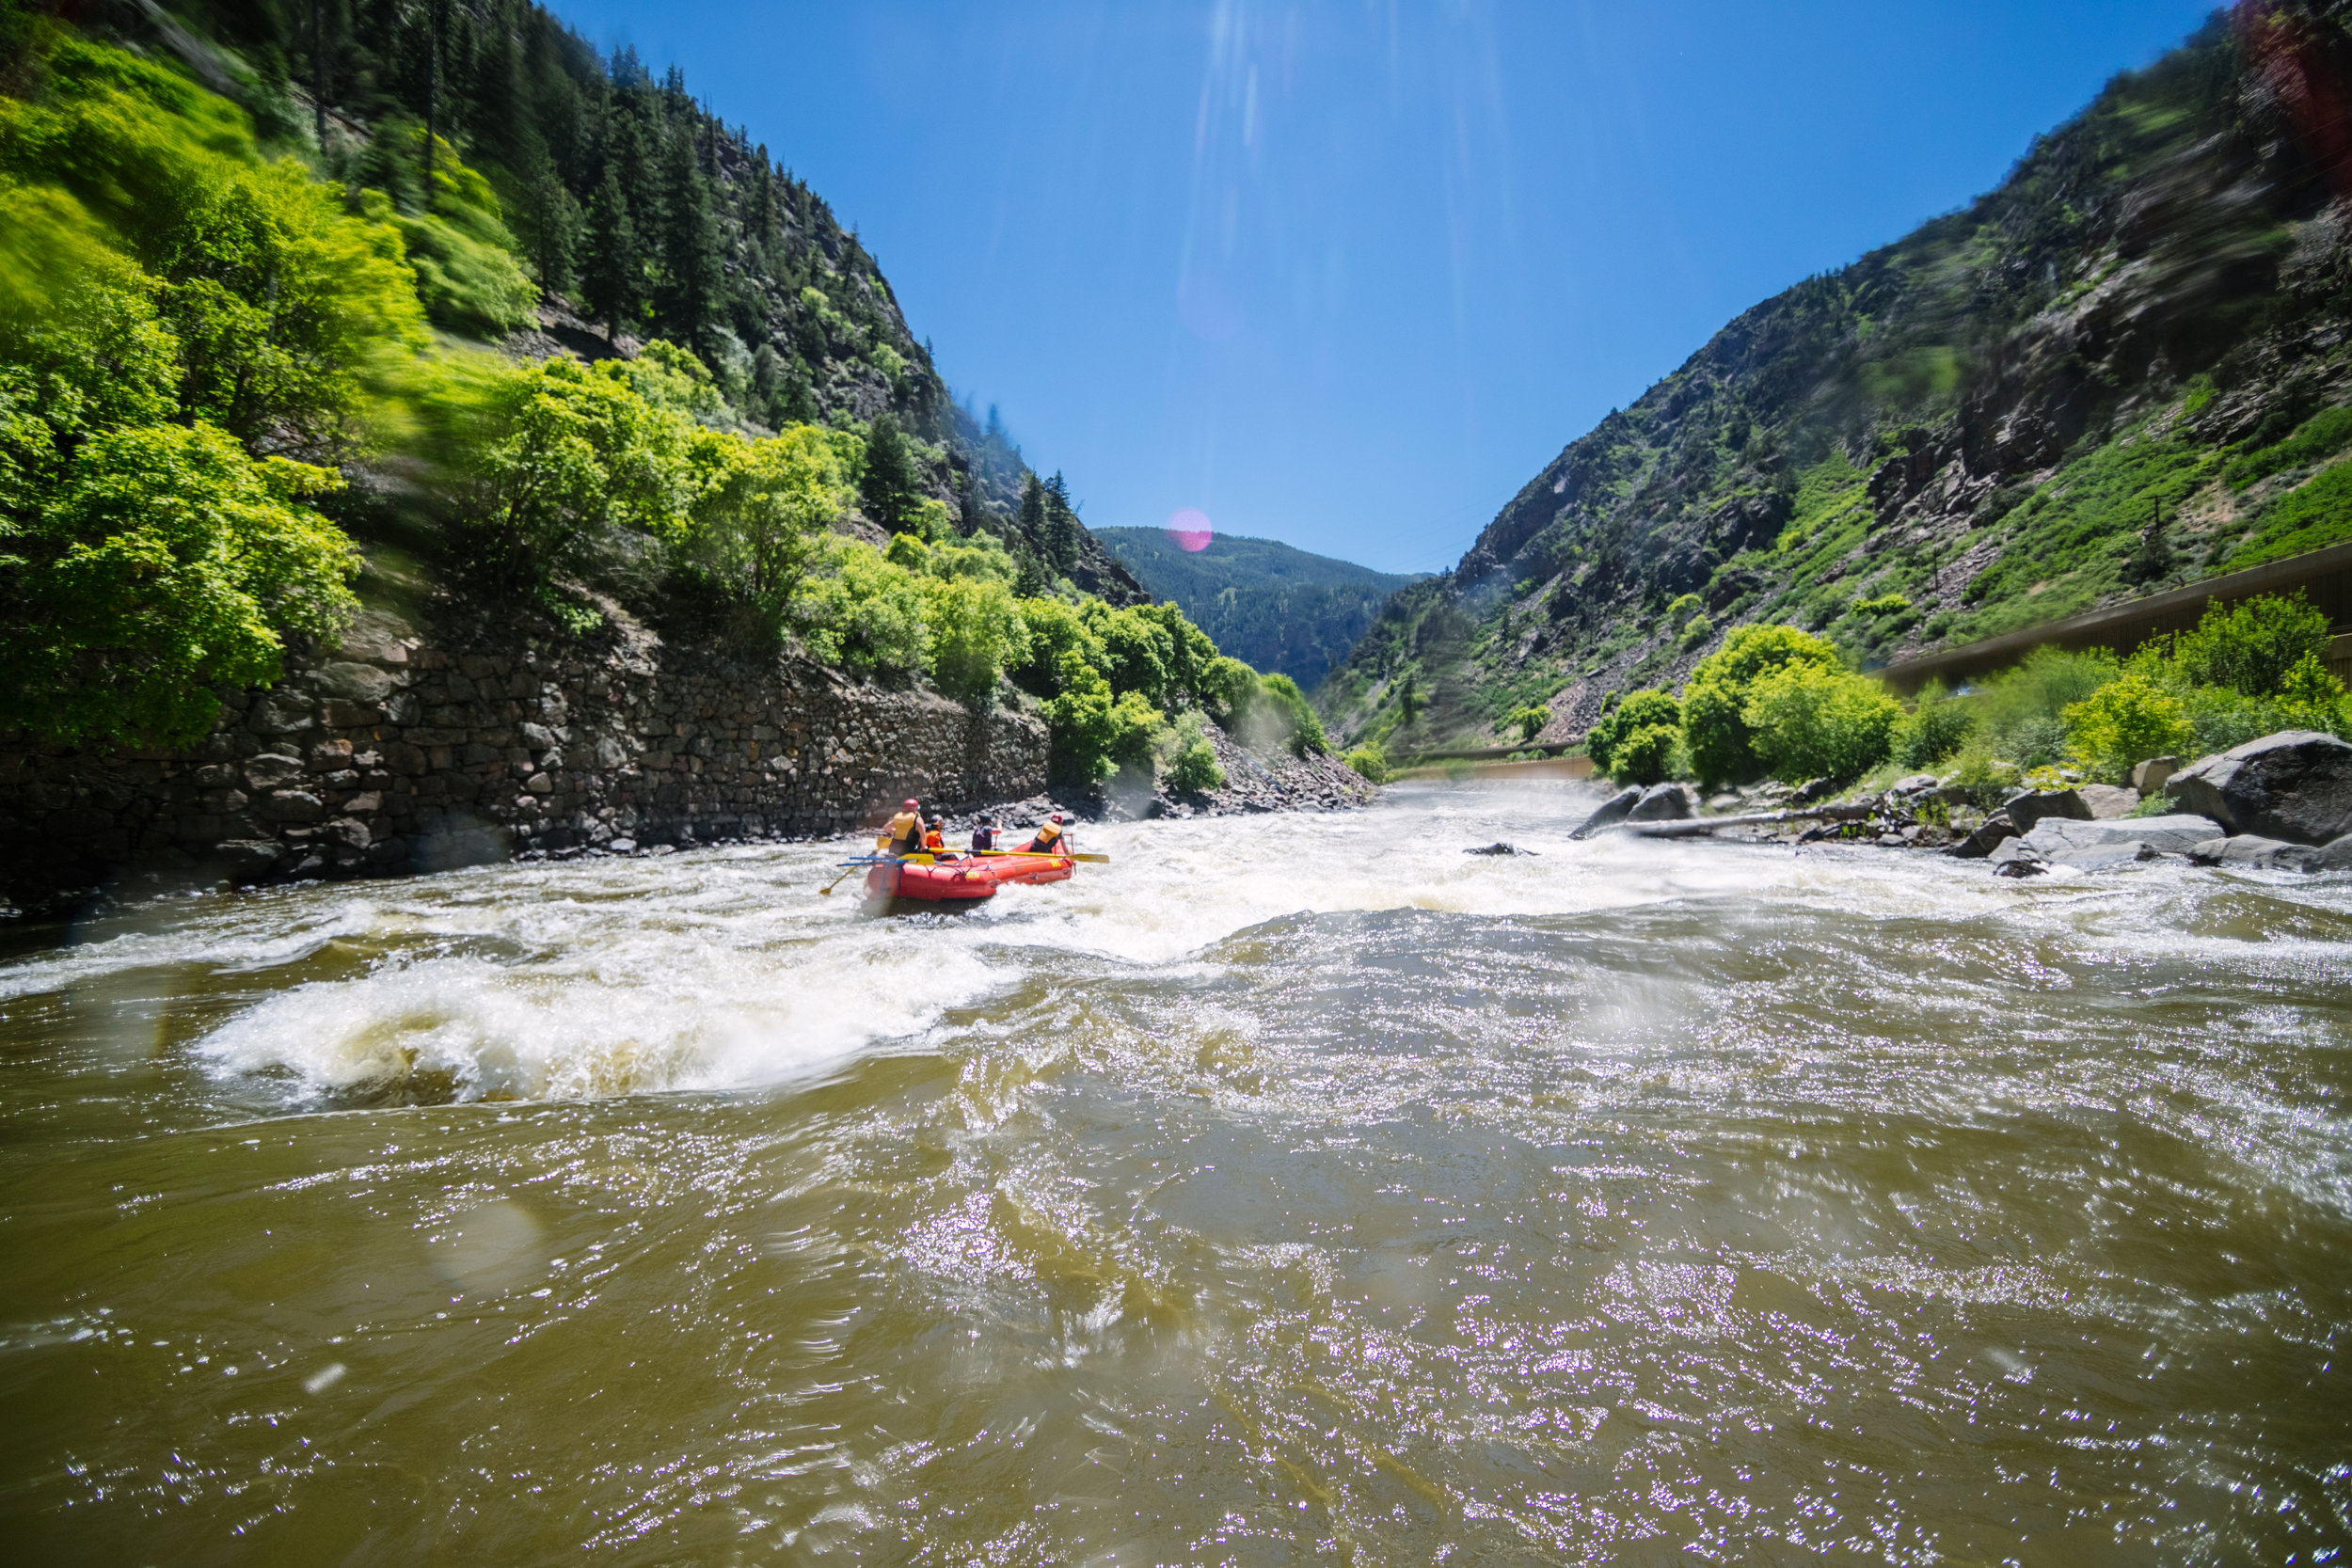 SHOSHONE SHORT - a satisfyingly quick whitewater rafting experience.